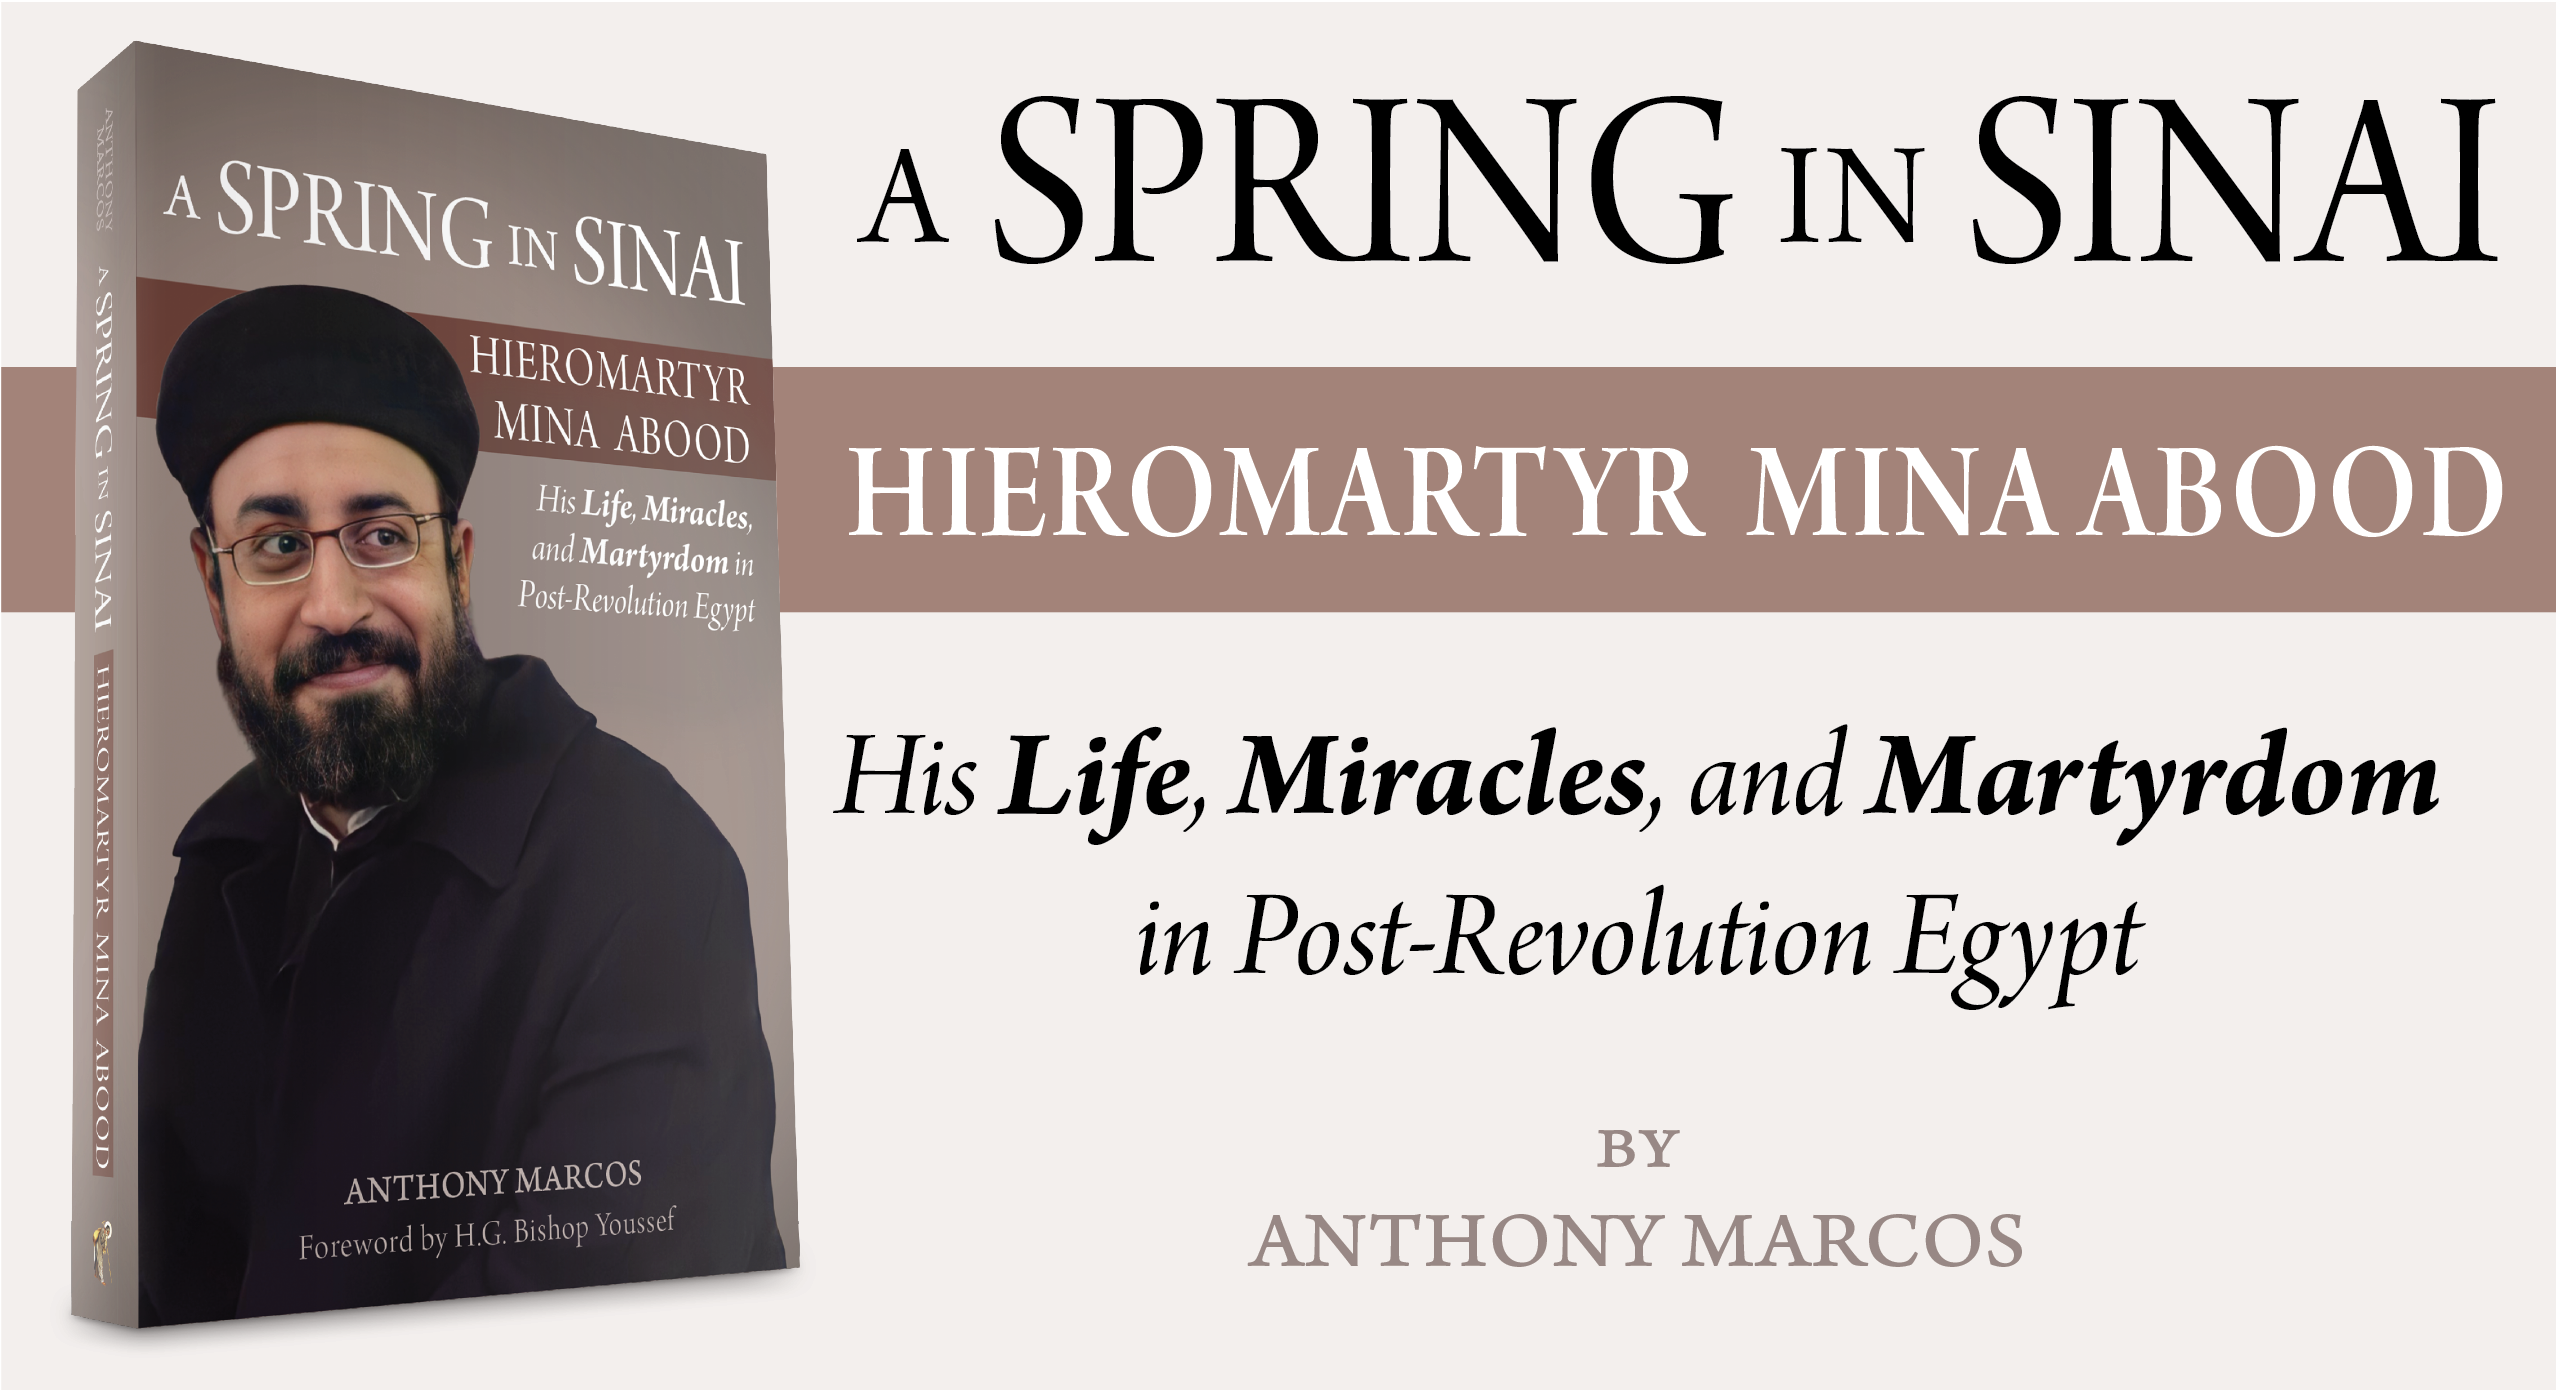 Upcoming Book Release: A Spring in Sinai: Hieromartyr Mina Abood